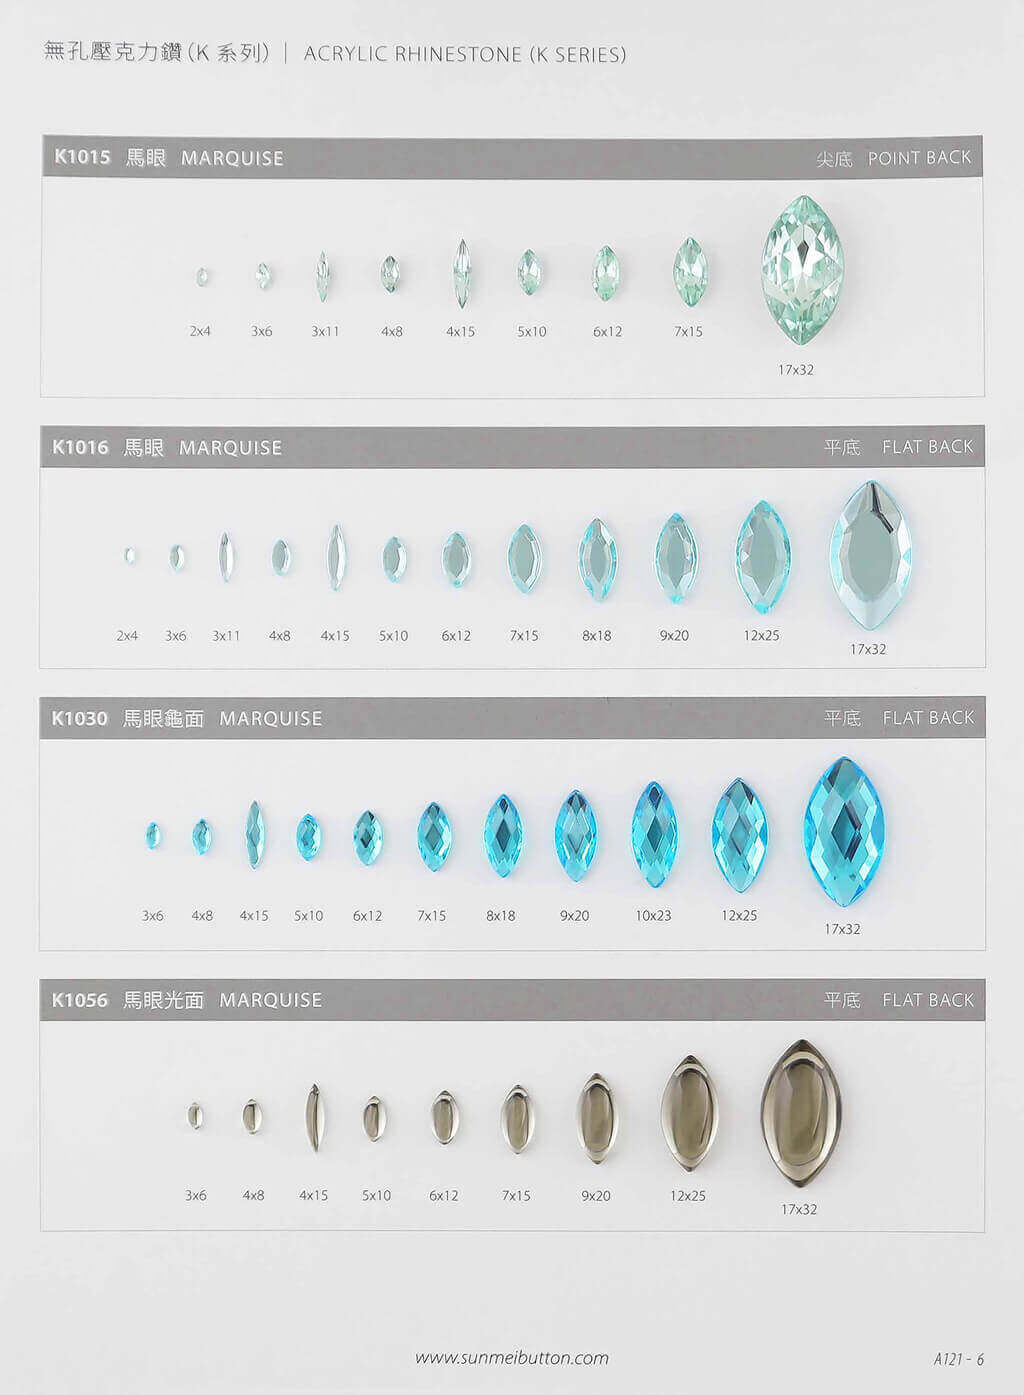 A121-6-acrylic rhinestone catalogue transparent